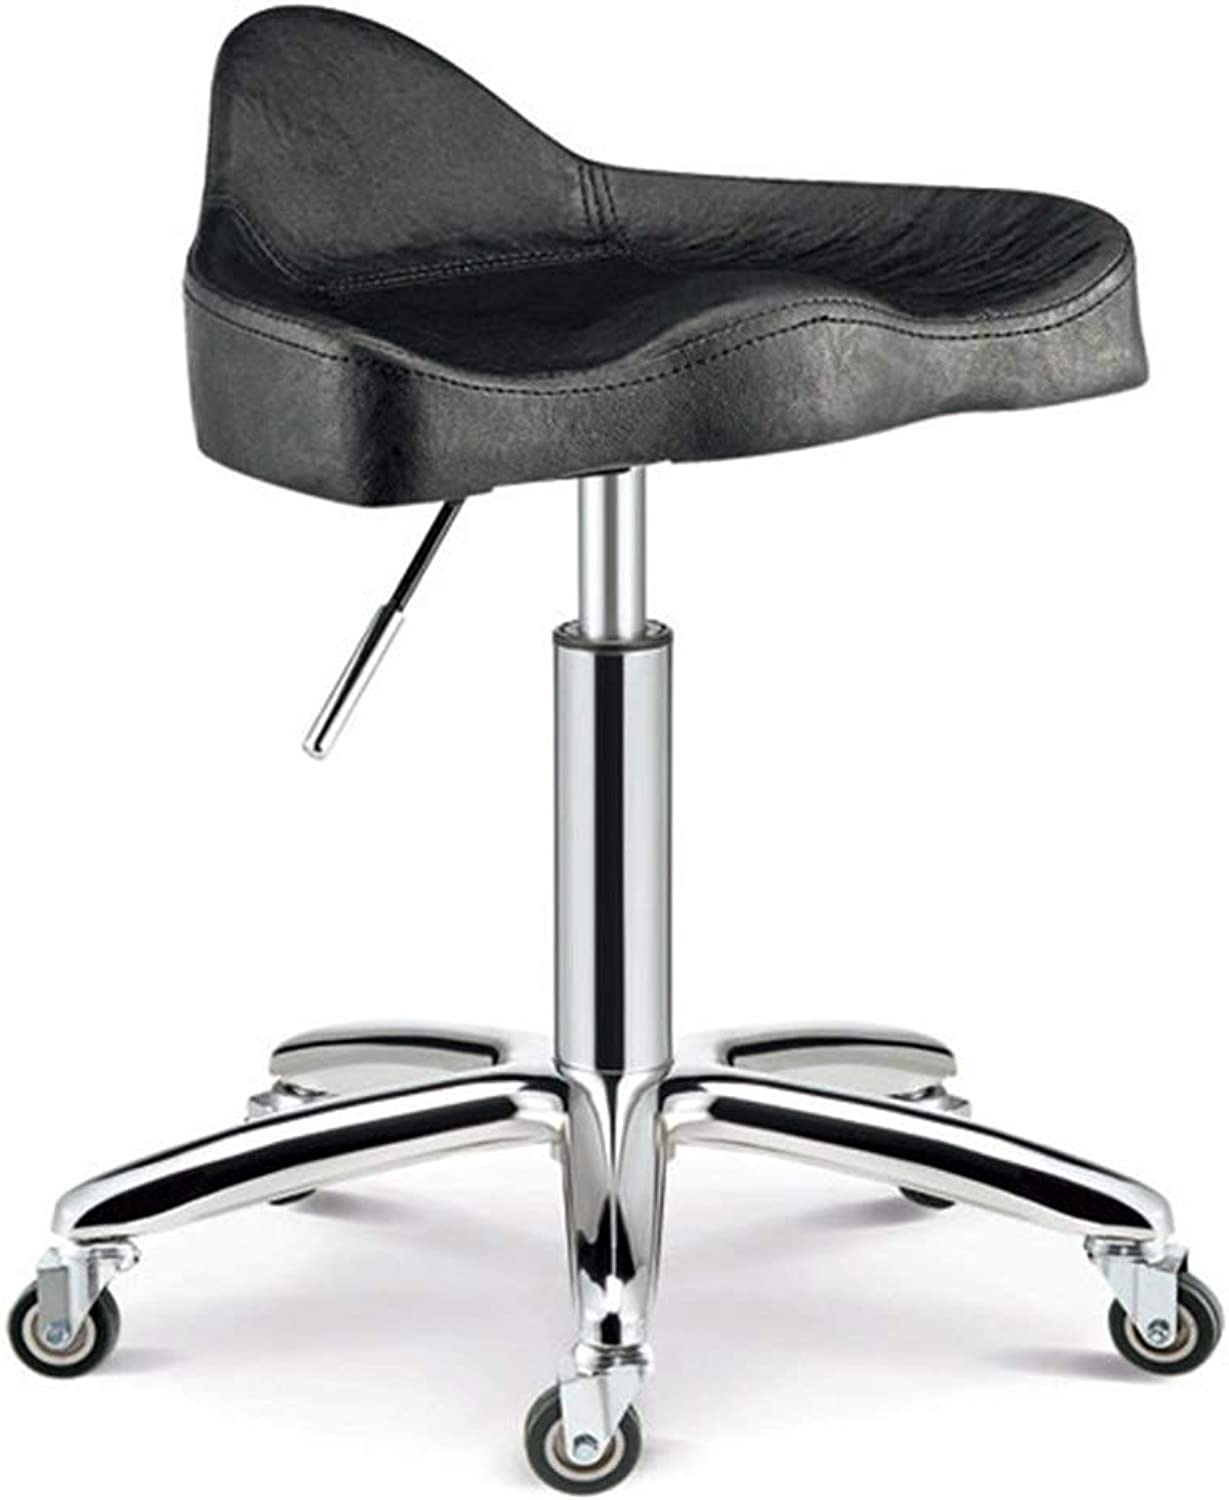 CAIJUN Bar Stool Stainless Steel Thick Sponge Waterproof Height Adjustable 360° redation Barber Chair, 4 colors Dual-use (color   Black, Size   40X60cm)